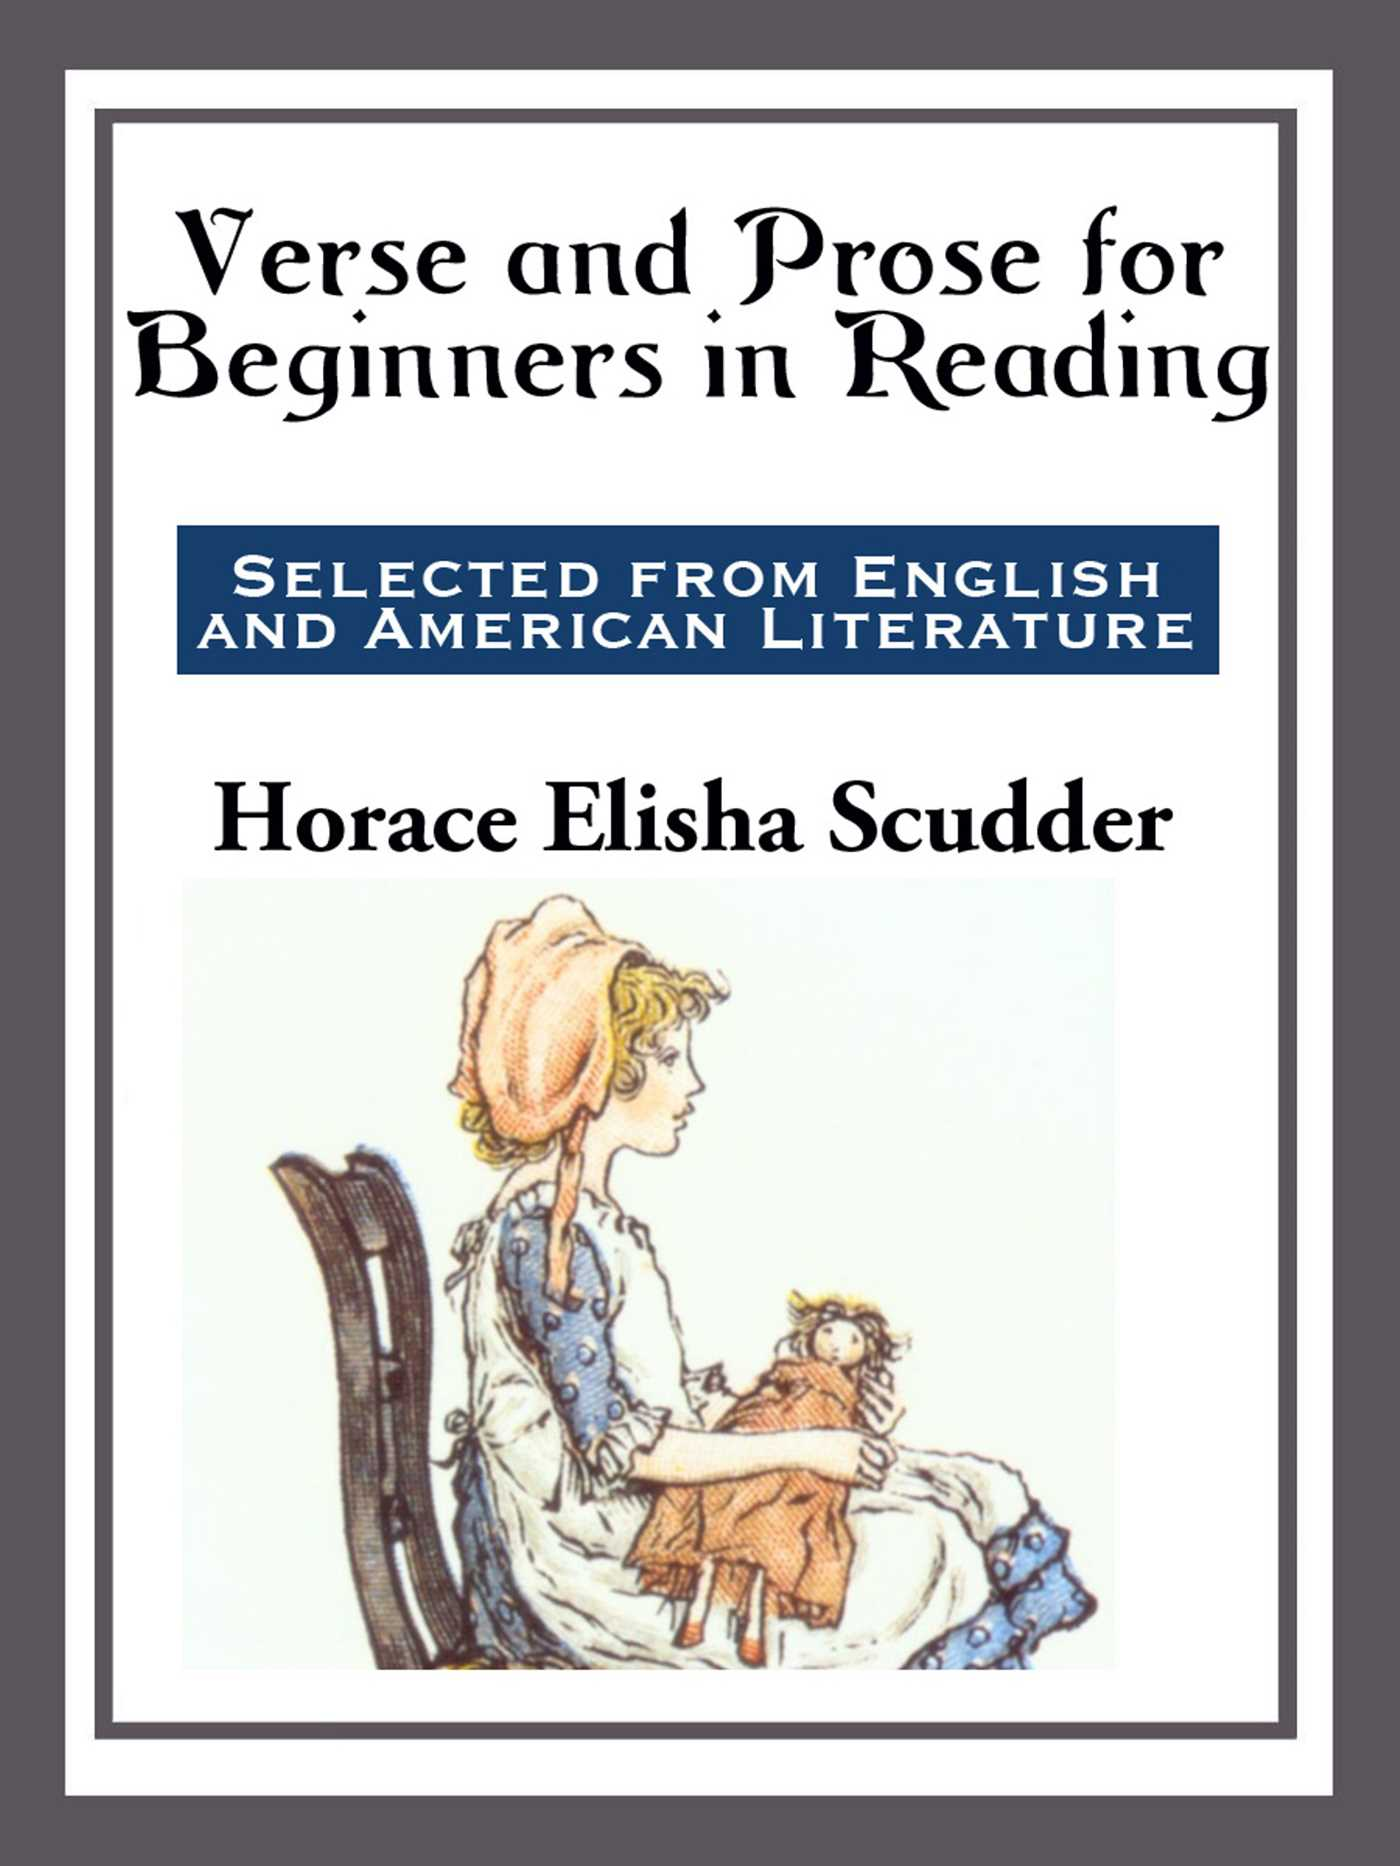 Verse and Prose eBook by Horace Elisha Scudder | Official